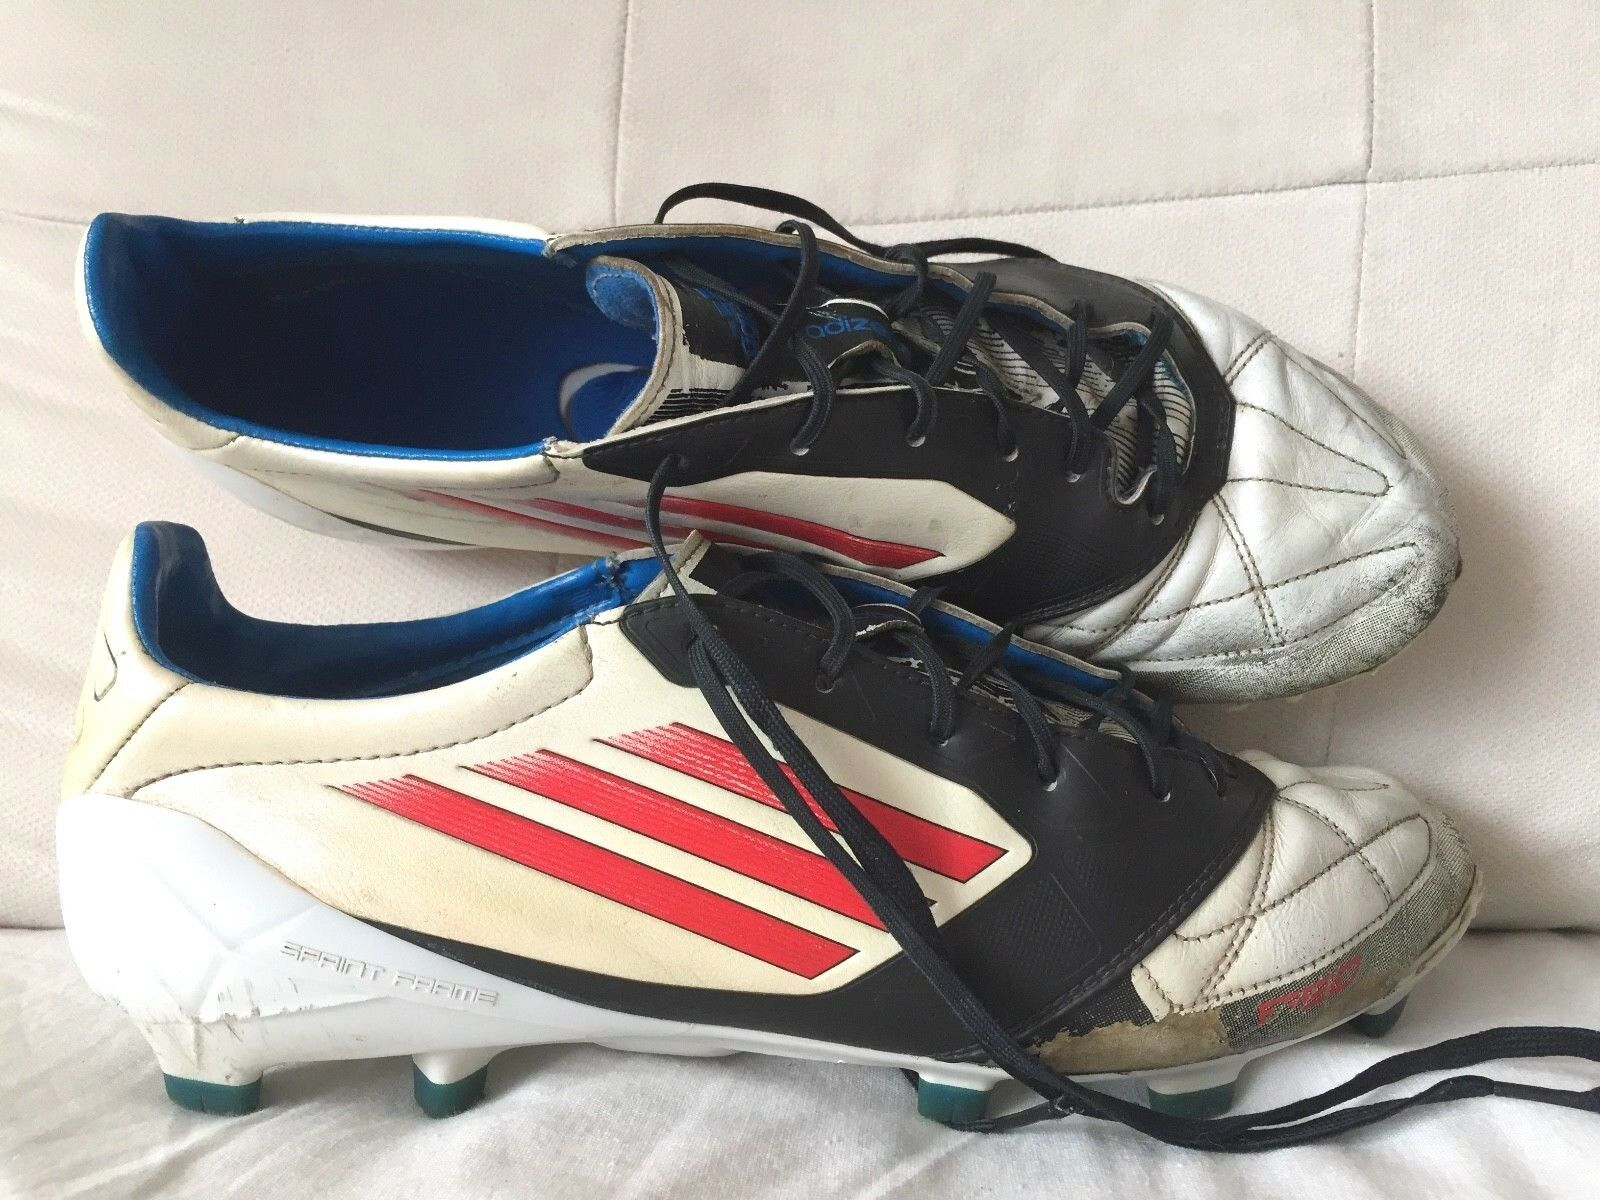 bc85ece0af2 Adidas f50 soccer cleats football boots K-Leather US10.5 Messi FG adizero  nuoxwp2312-Men